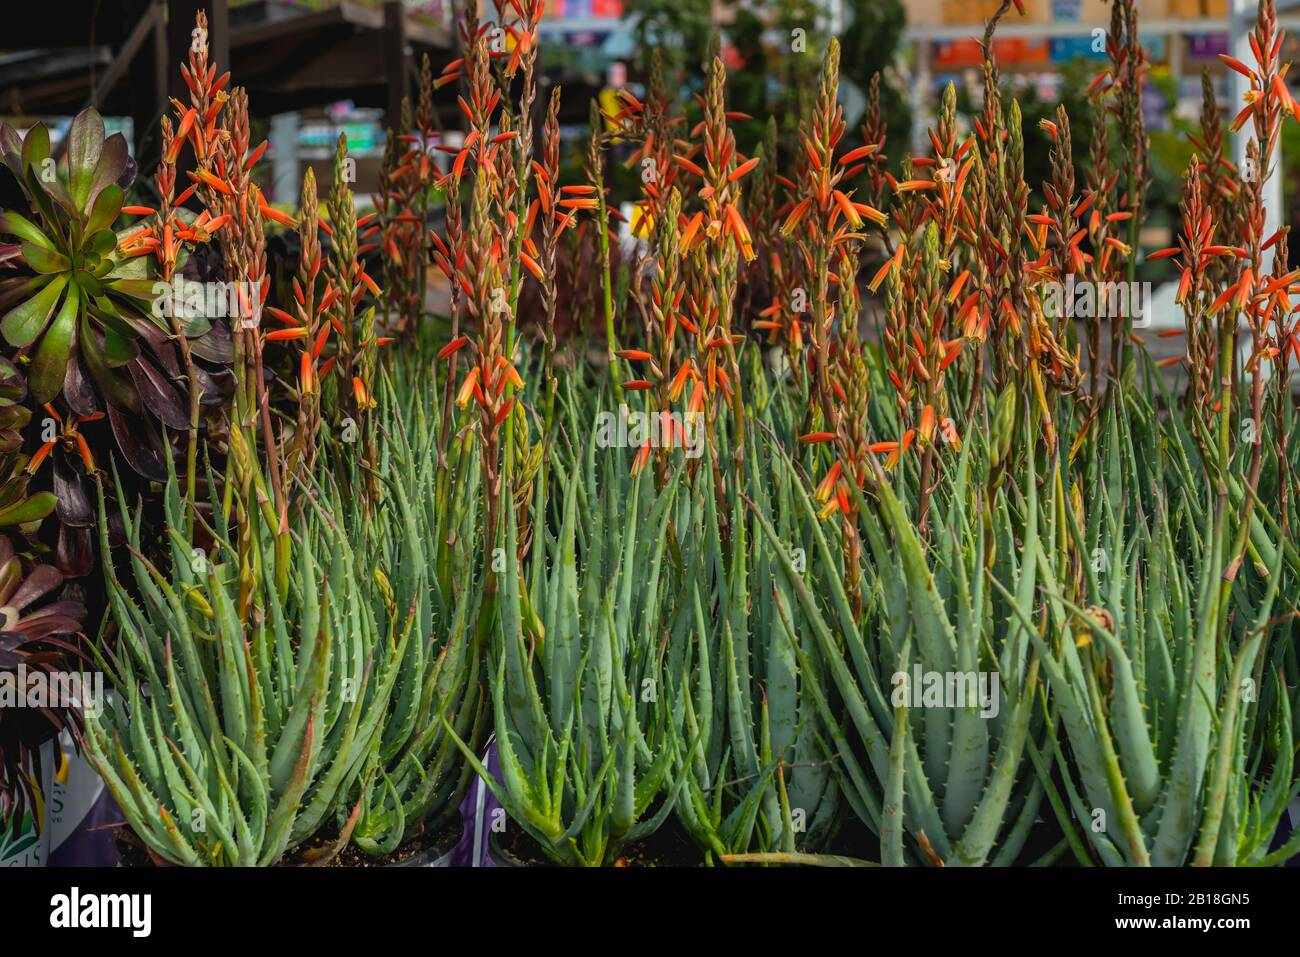 Floral Arrangements At Local Floral Market In California Aloe Vera Plant In Bloom Close Up Stock Photo Alamy